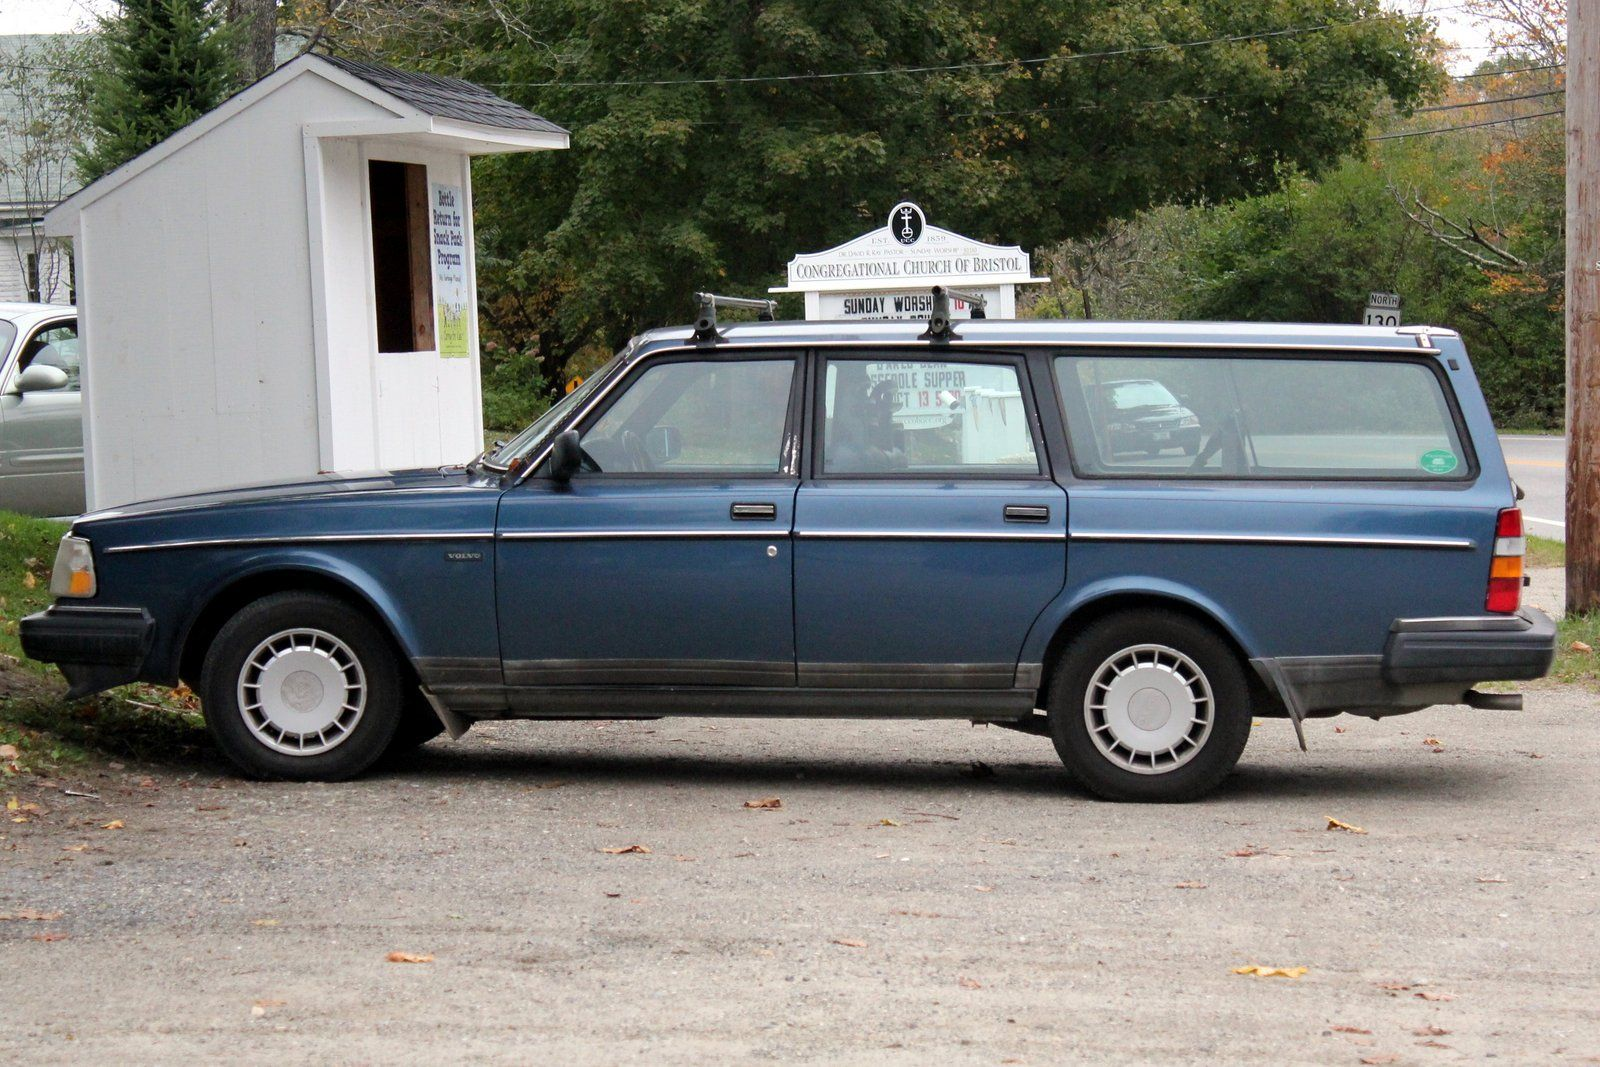 The Daily Prep Preppy Cars Preppy Car Volvo Dealership Volvo Wagon